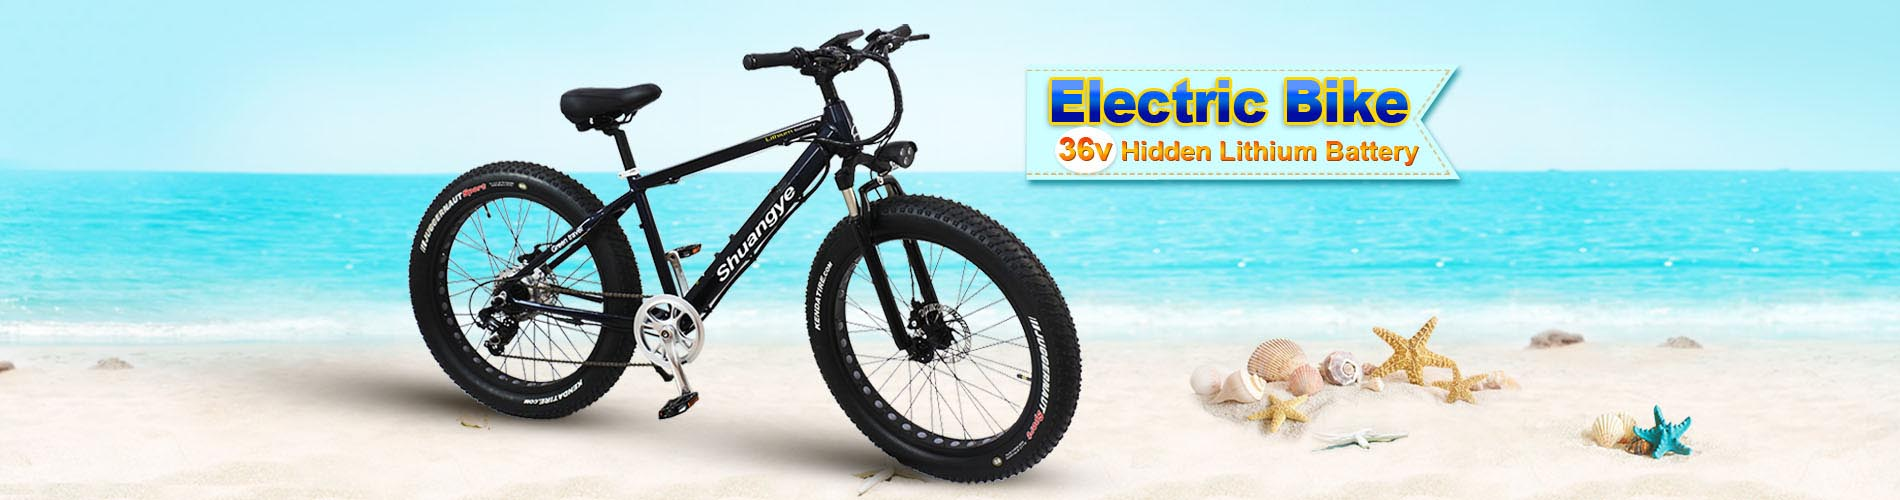 28 inch city electric bike kit]